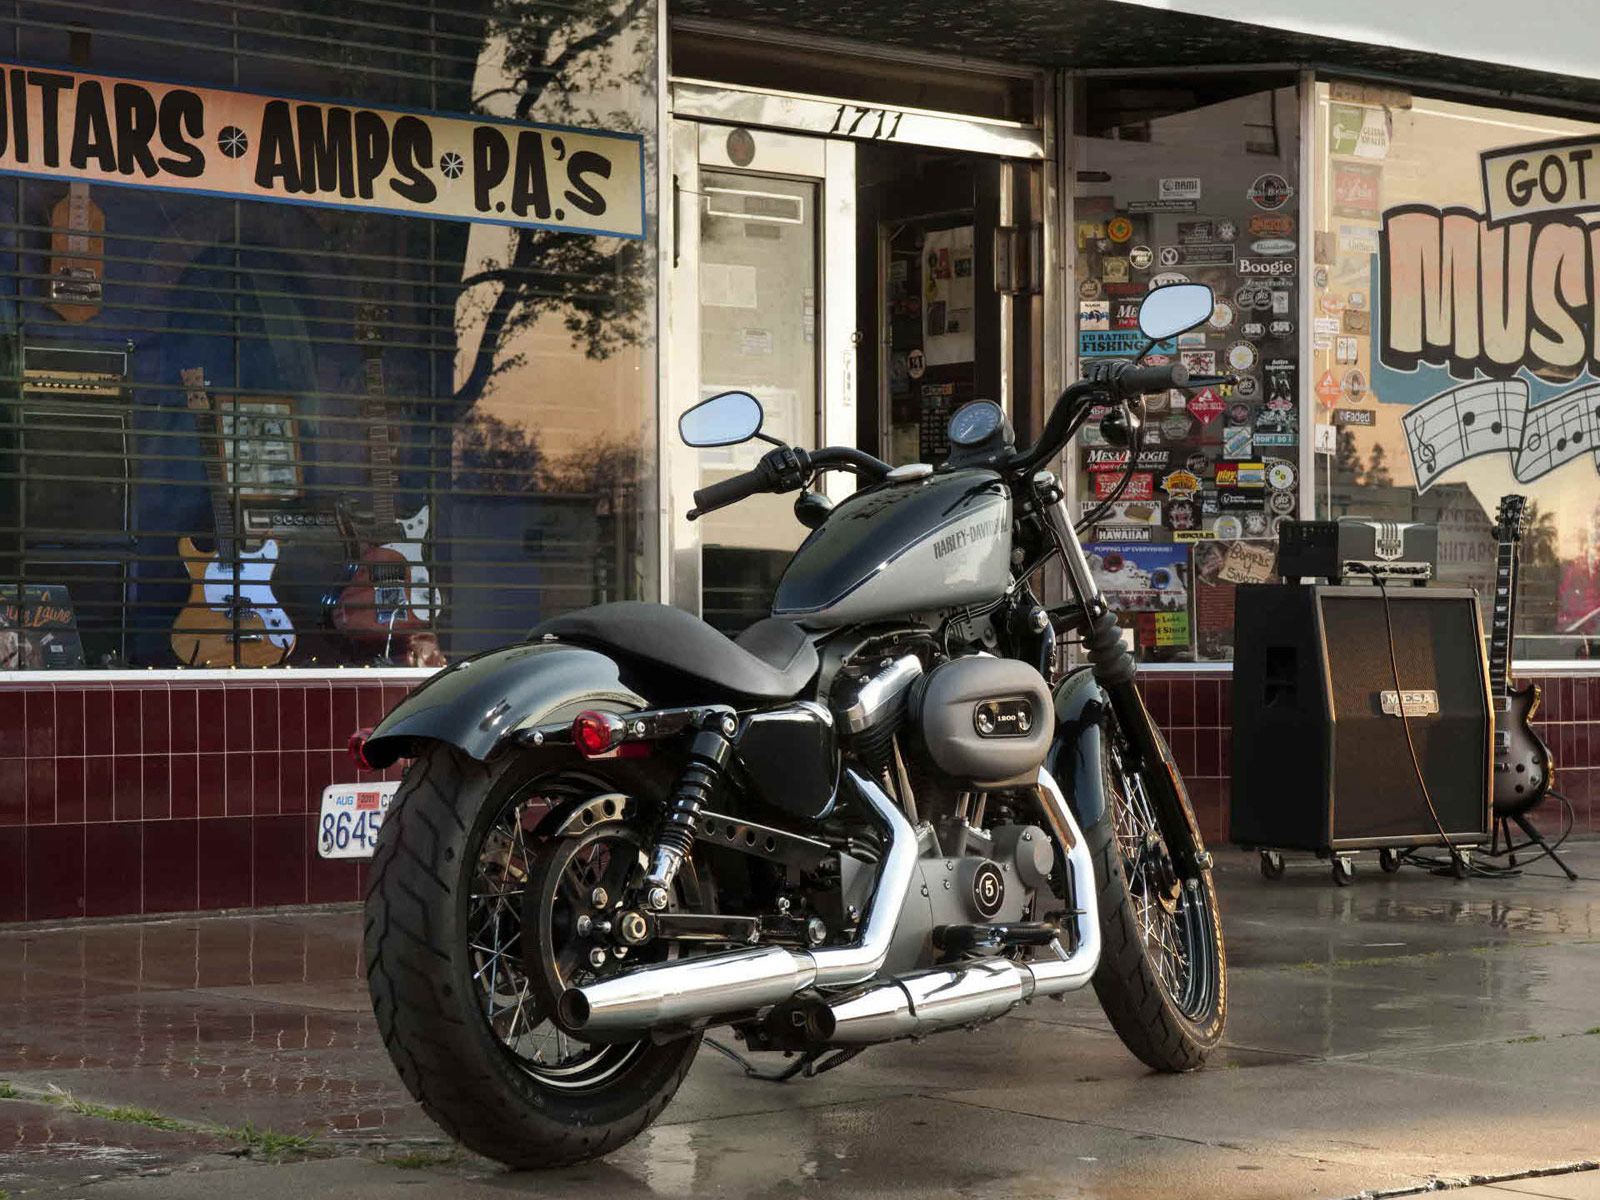 2012 harley-davidson xl1200n nightster pictures, review, specs